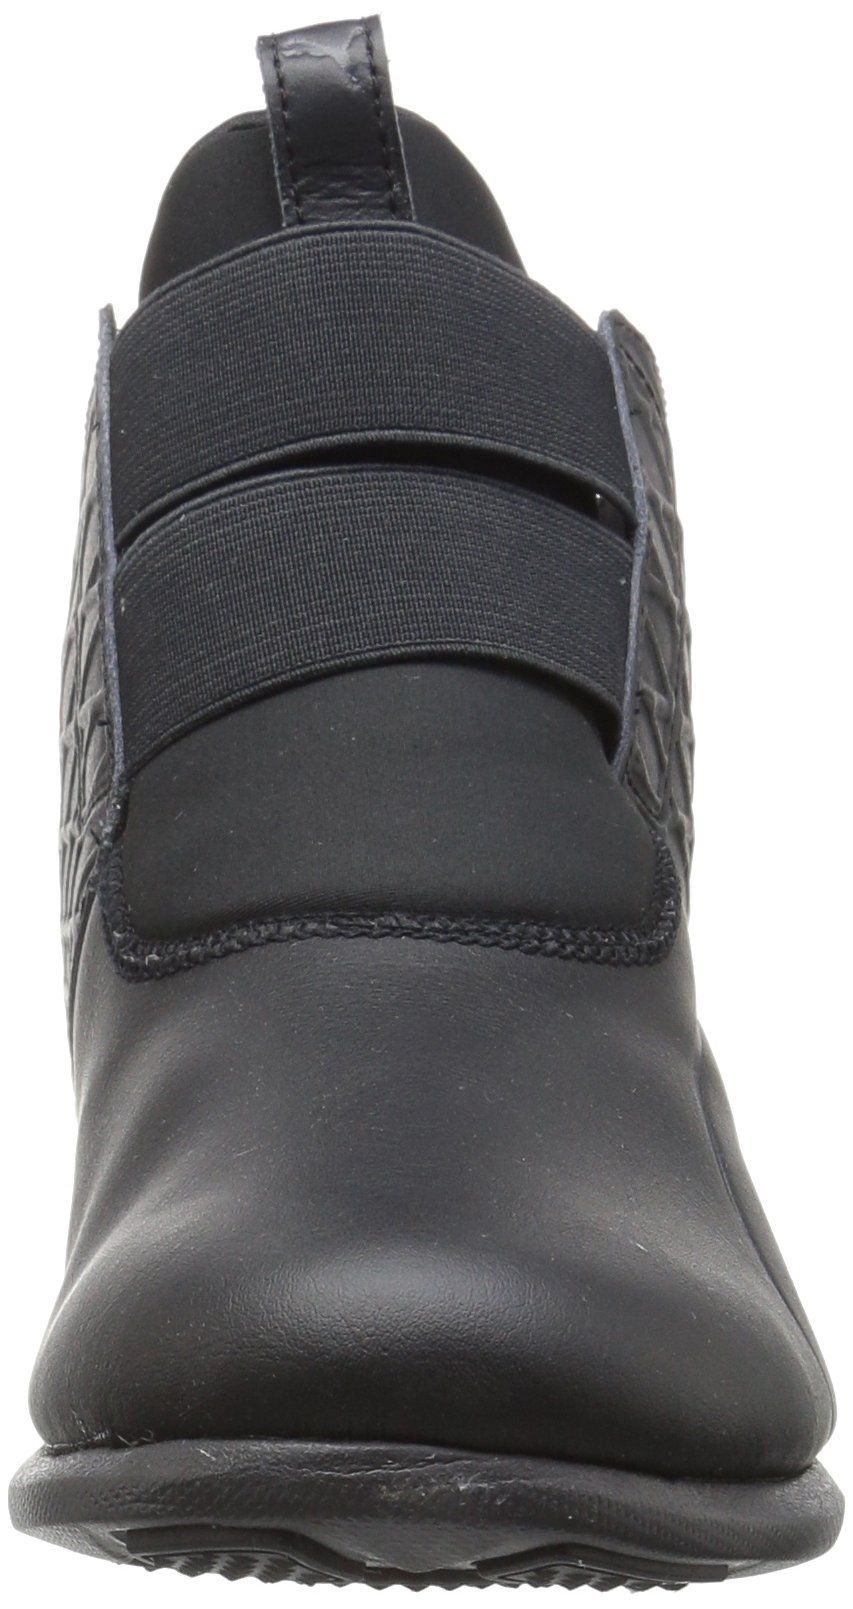 PUMA Womens SF Ankle Boot Sneaker Moonless NightMoonless NightMoonless  Night 11 M US     See this great product. (This is an affiliate link)   womenankleboot b4abb566f